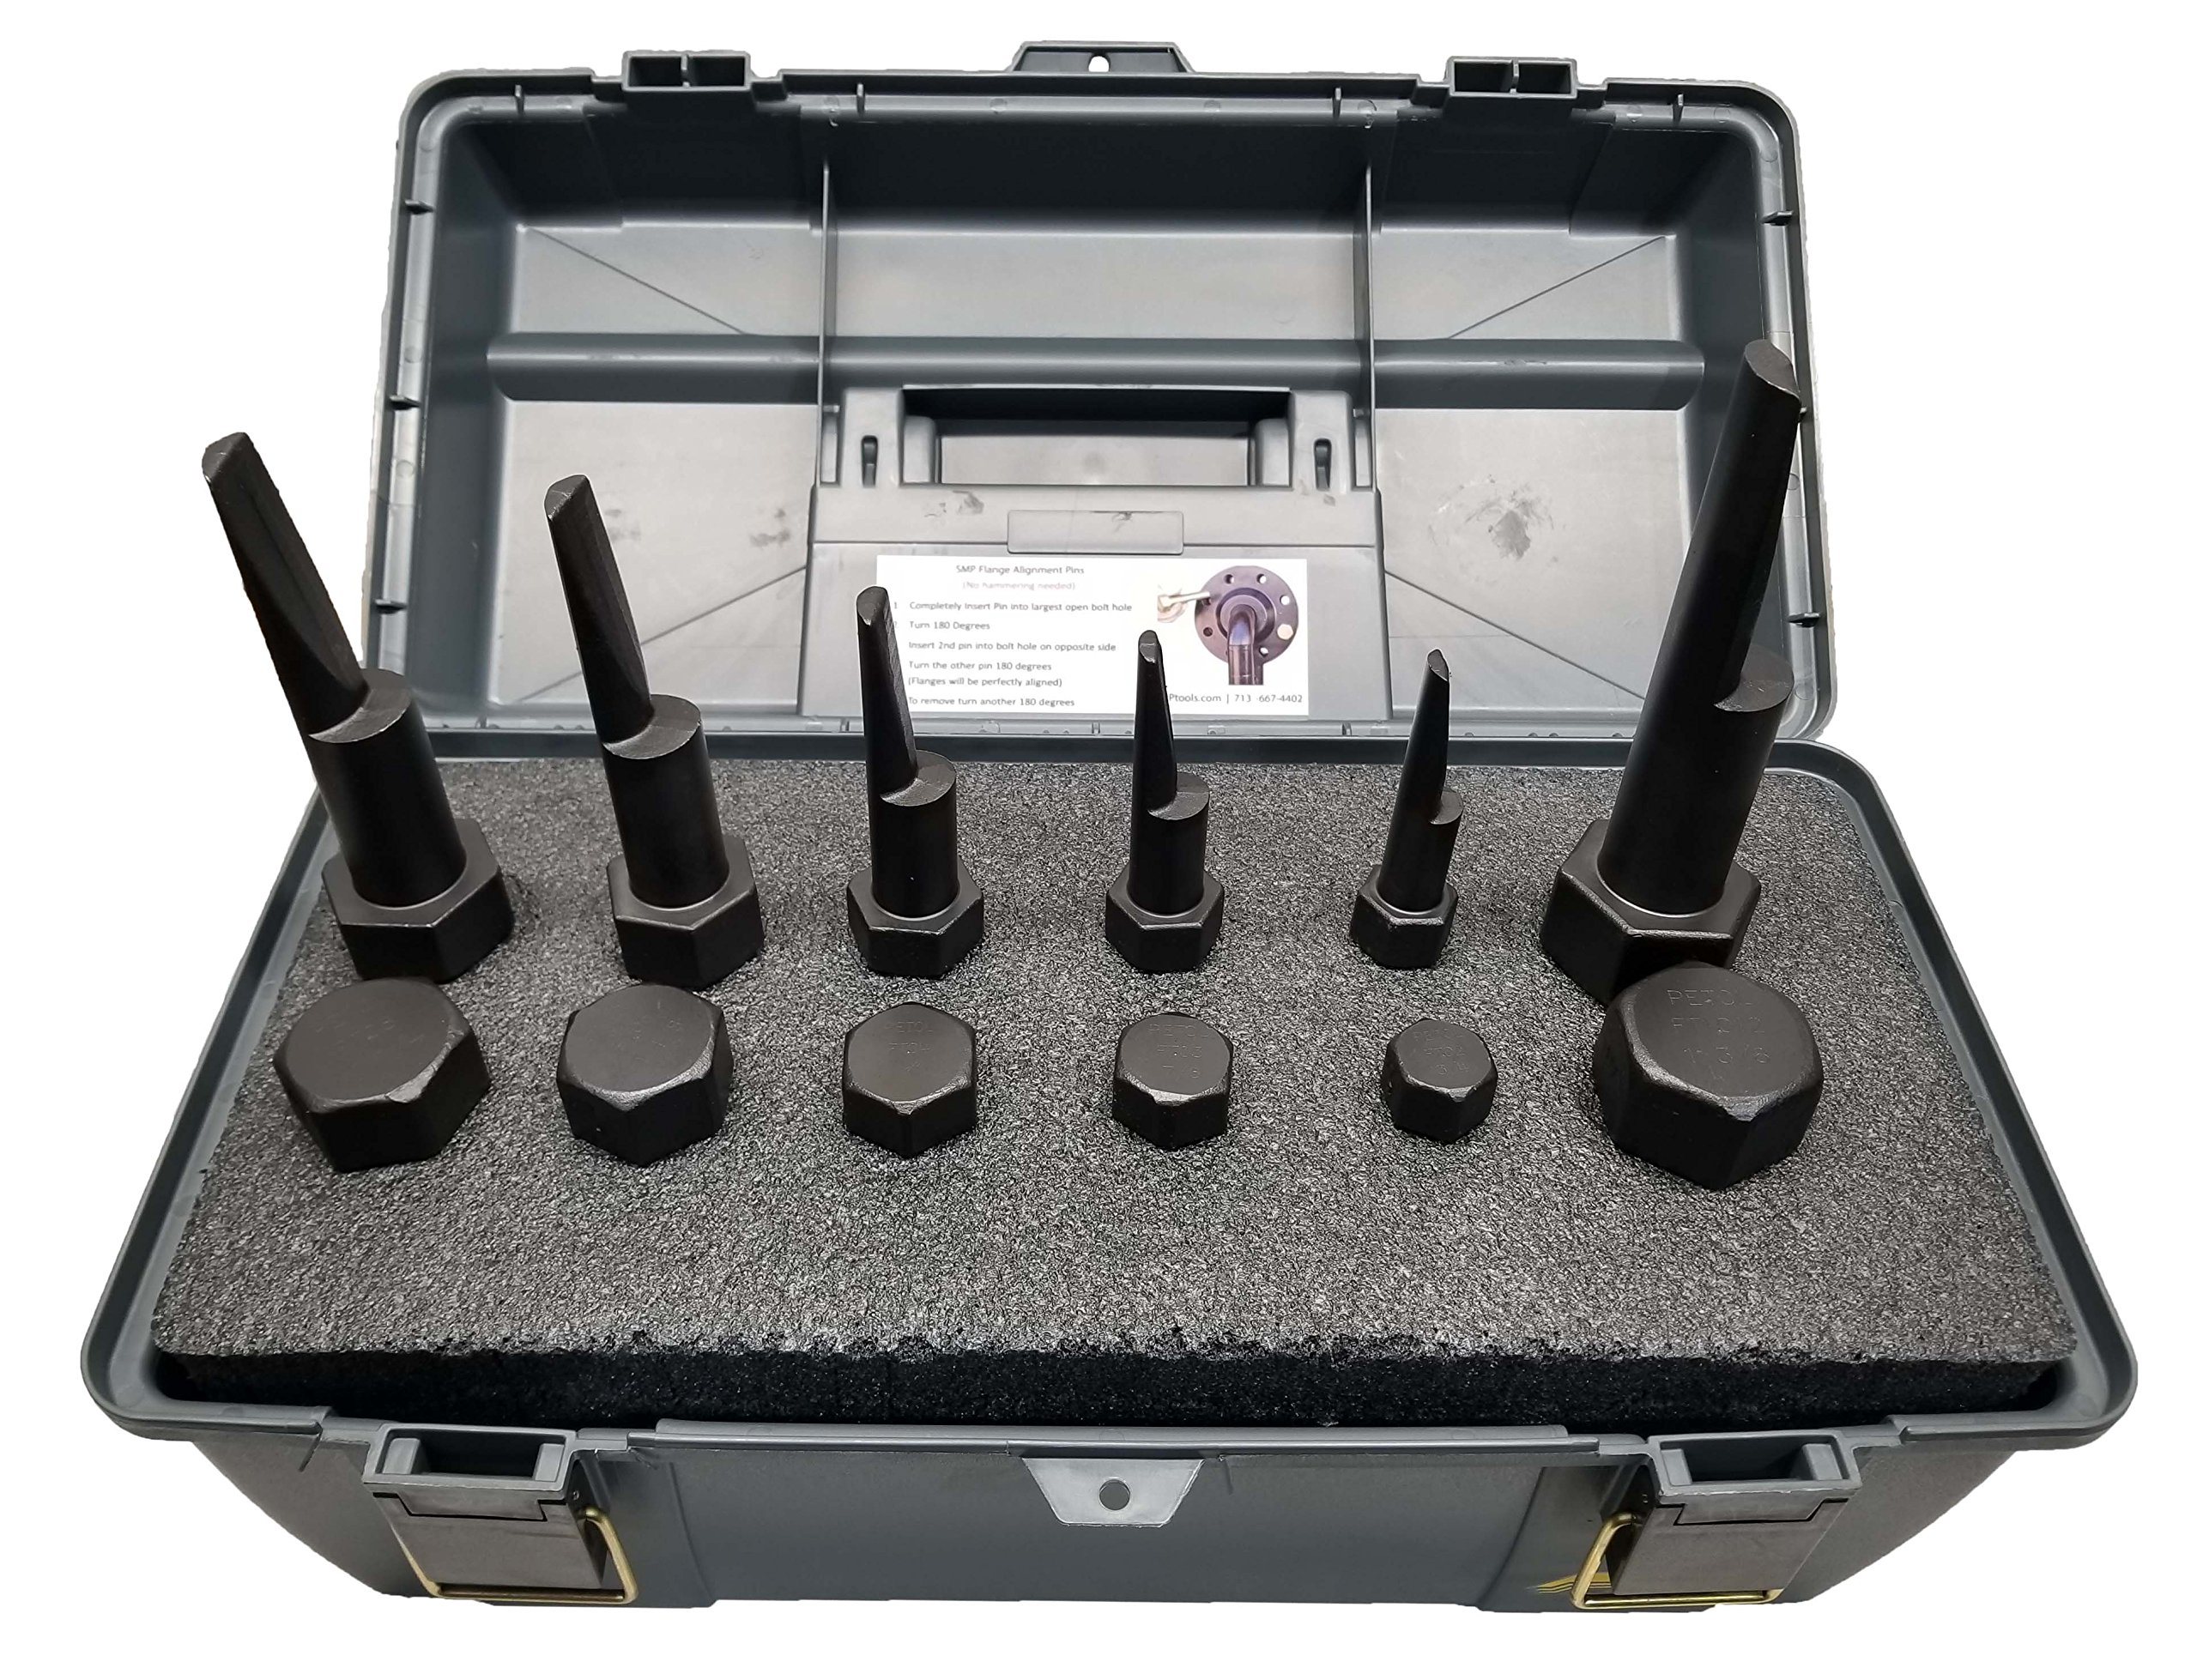 Titan Flange Alignment Pin Set with Case, Contains 2 Units of pin Sizes 3/4'', 7/8'', 1'', 1-1/8'', 1-1/4'',1-3/8''